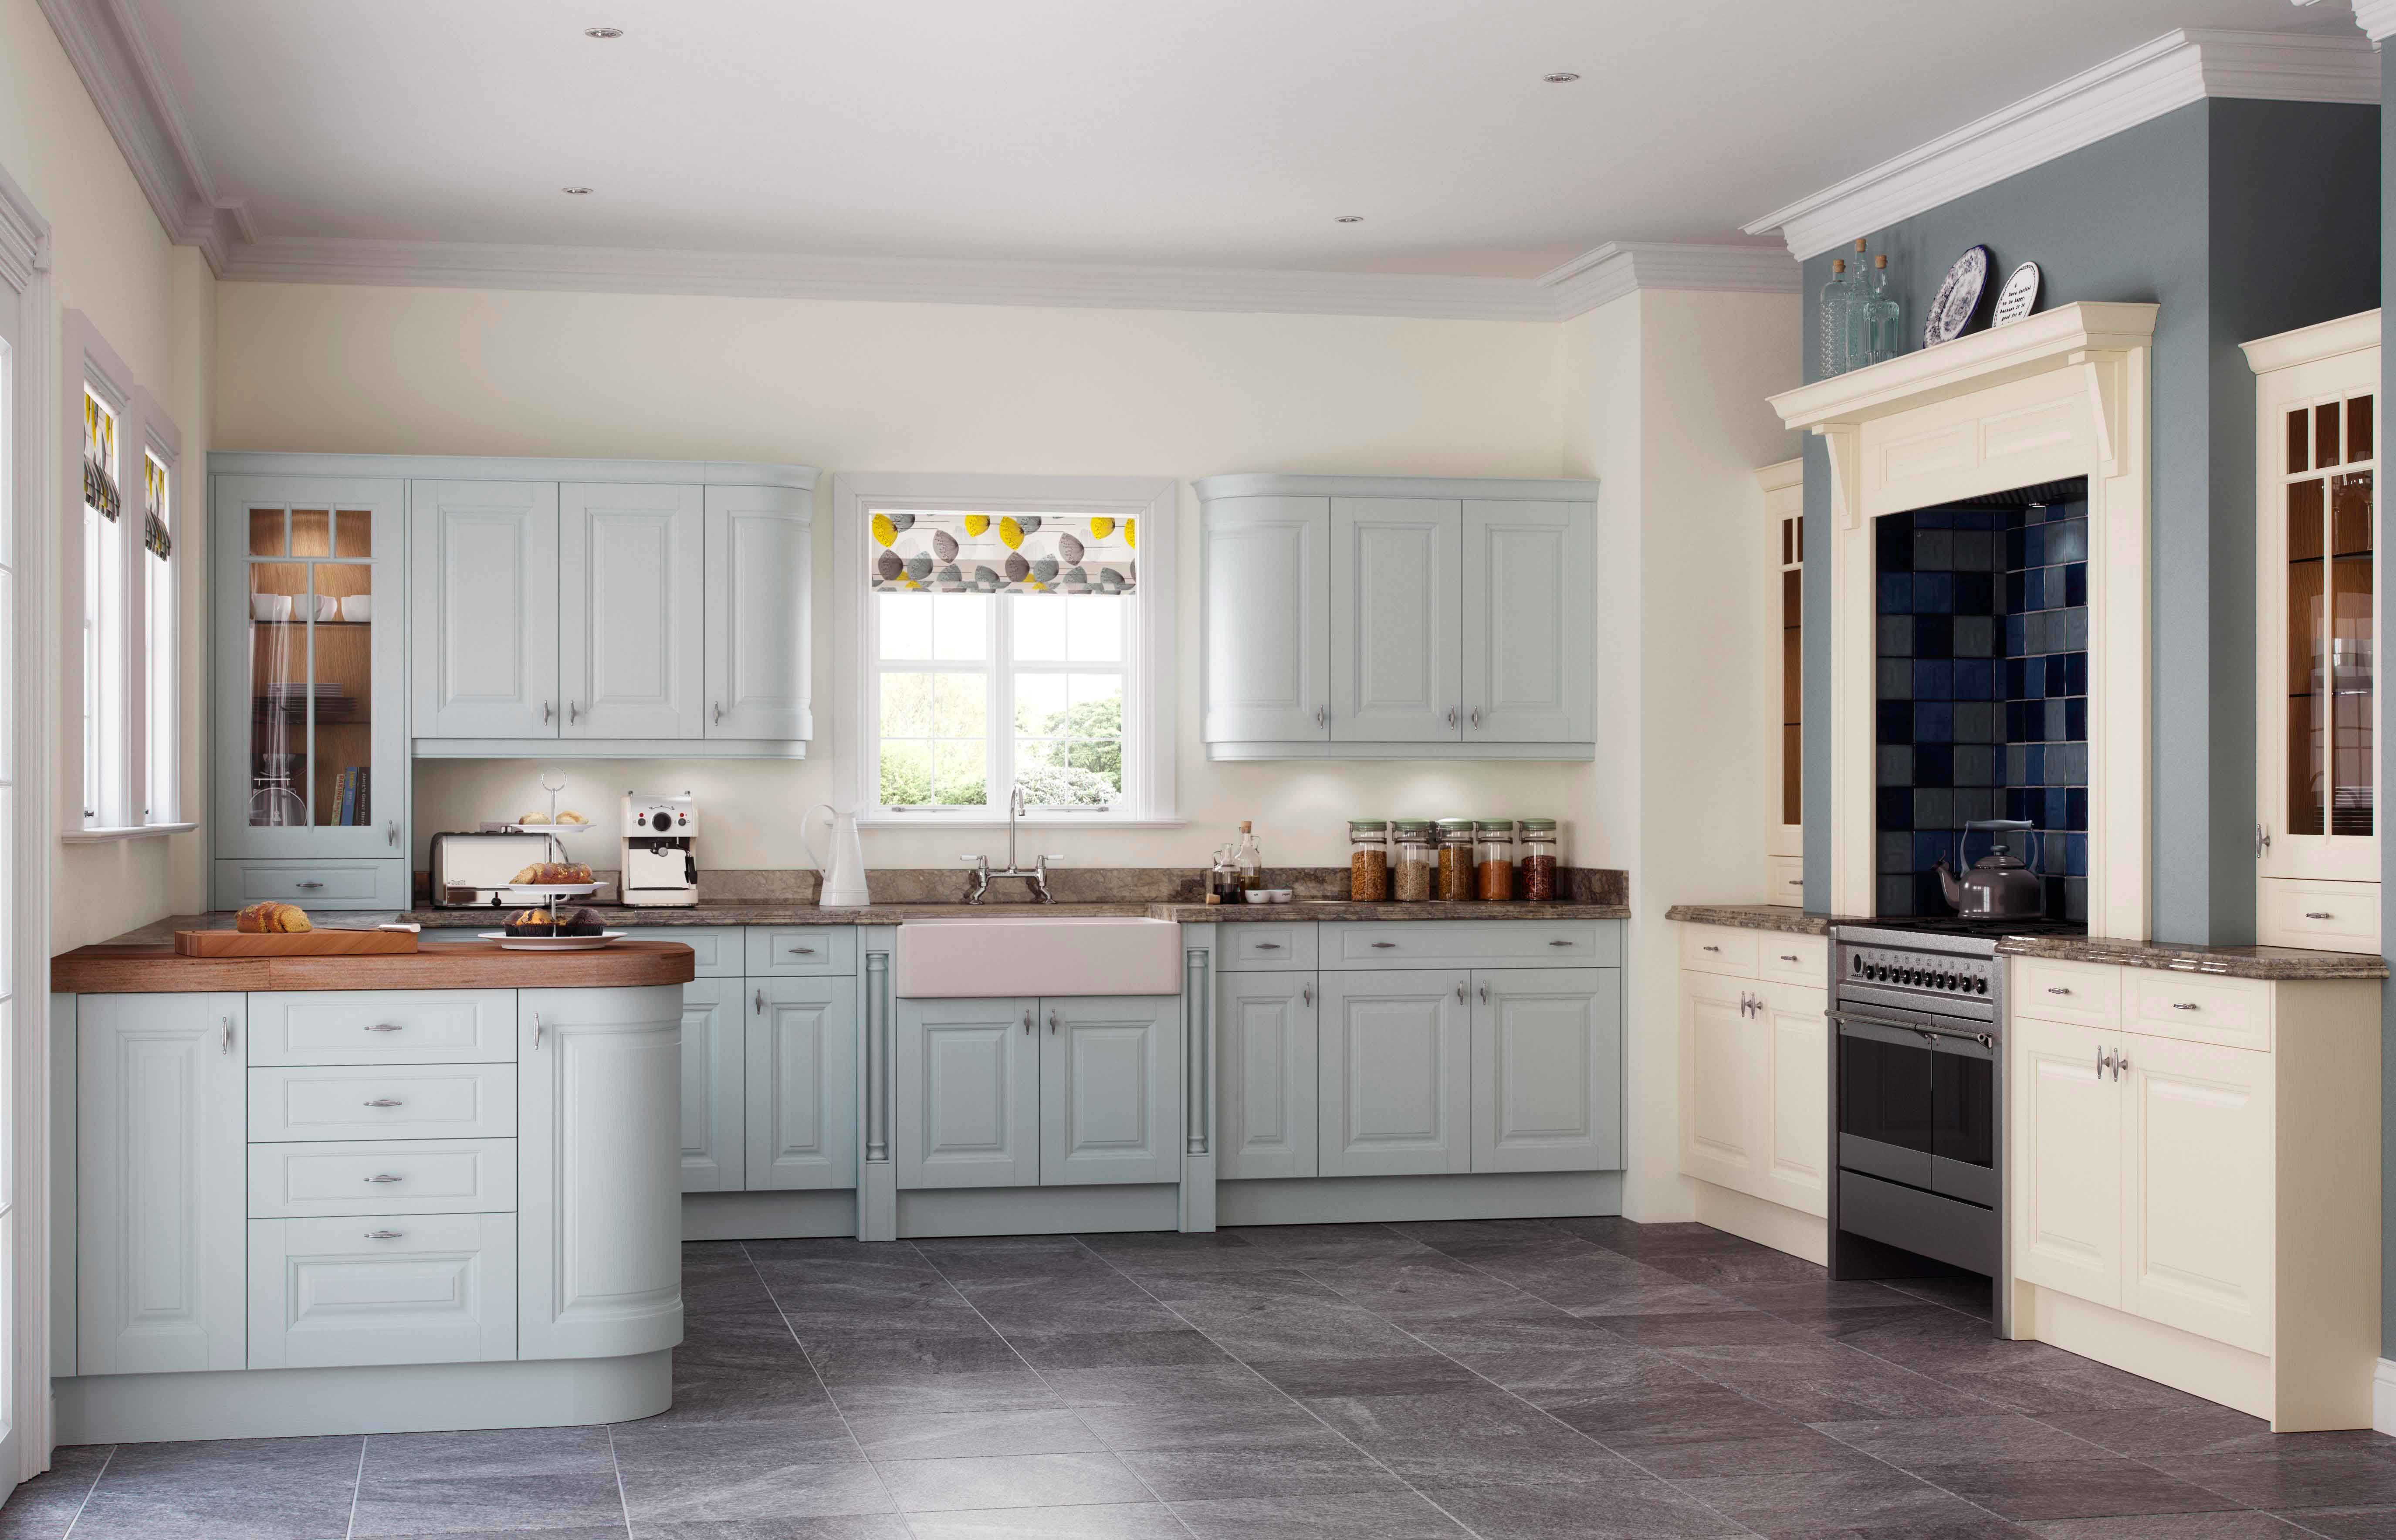 One Of Our Classic Kitchens Carnegie In Powder Blue And Cream Kitchen Design Classic Kitchens Kitchen